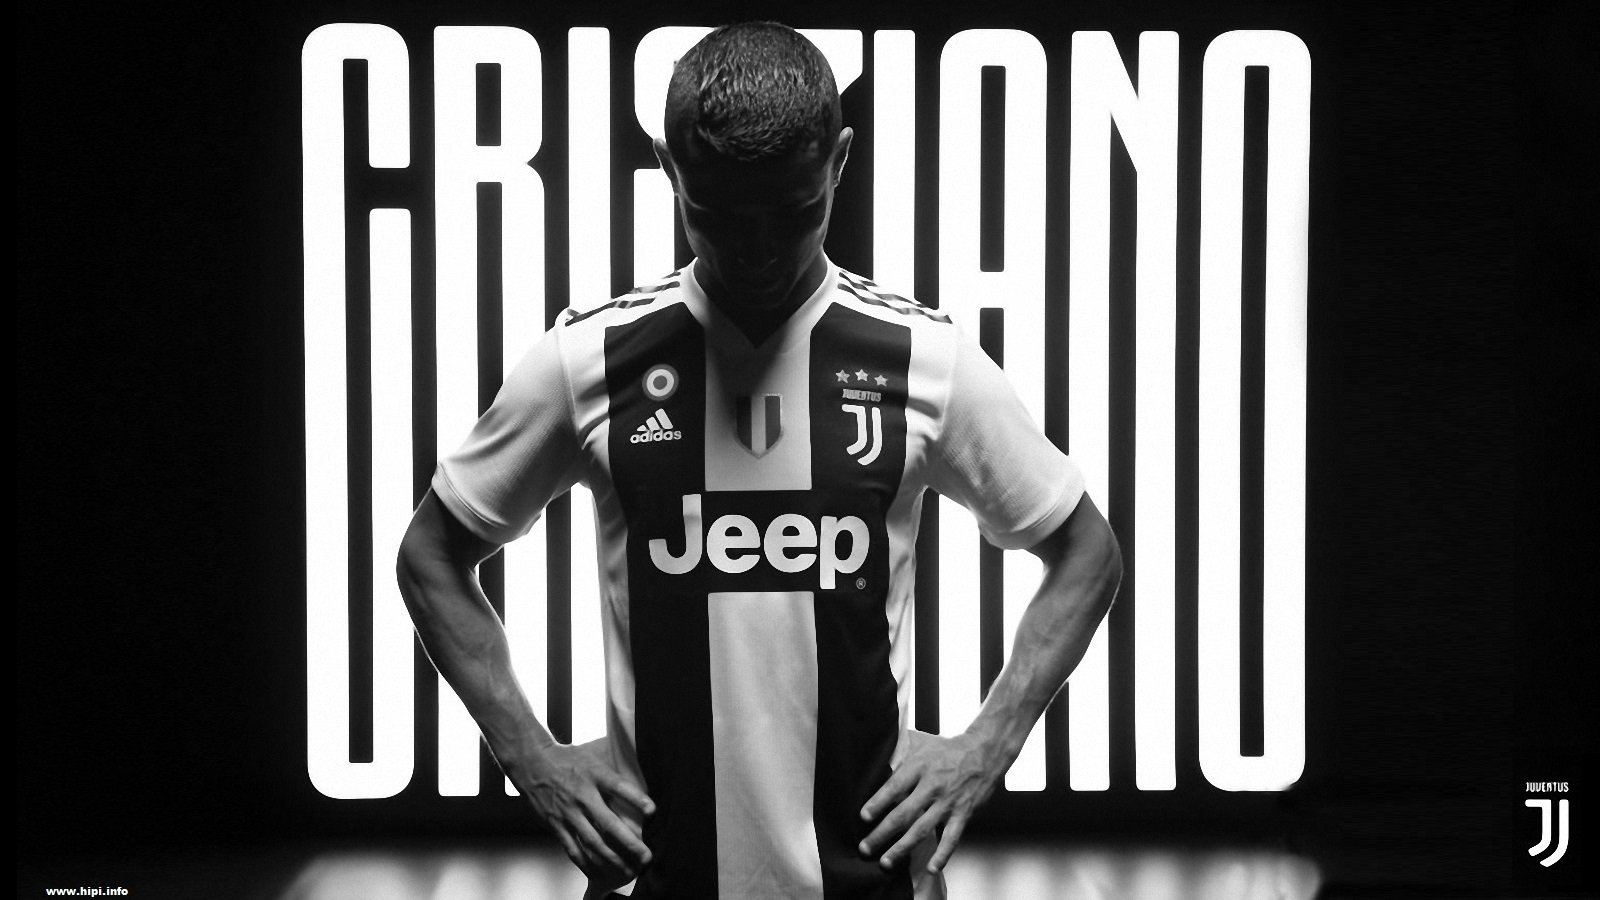 Cristiano Ronaldo Juventus Hd Wallpaper Free Download Hipi Info